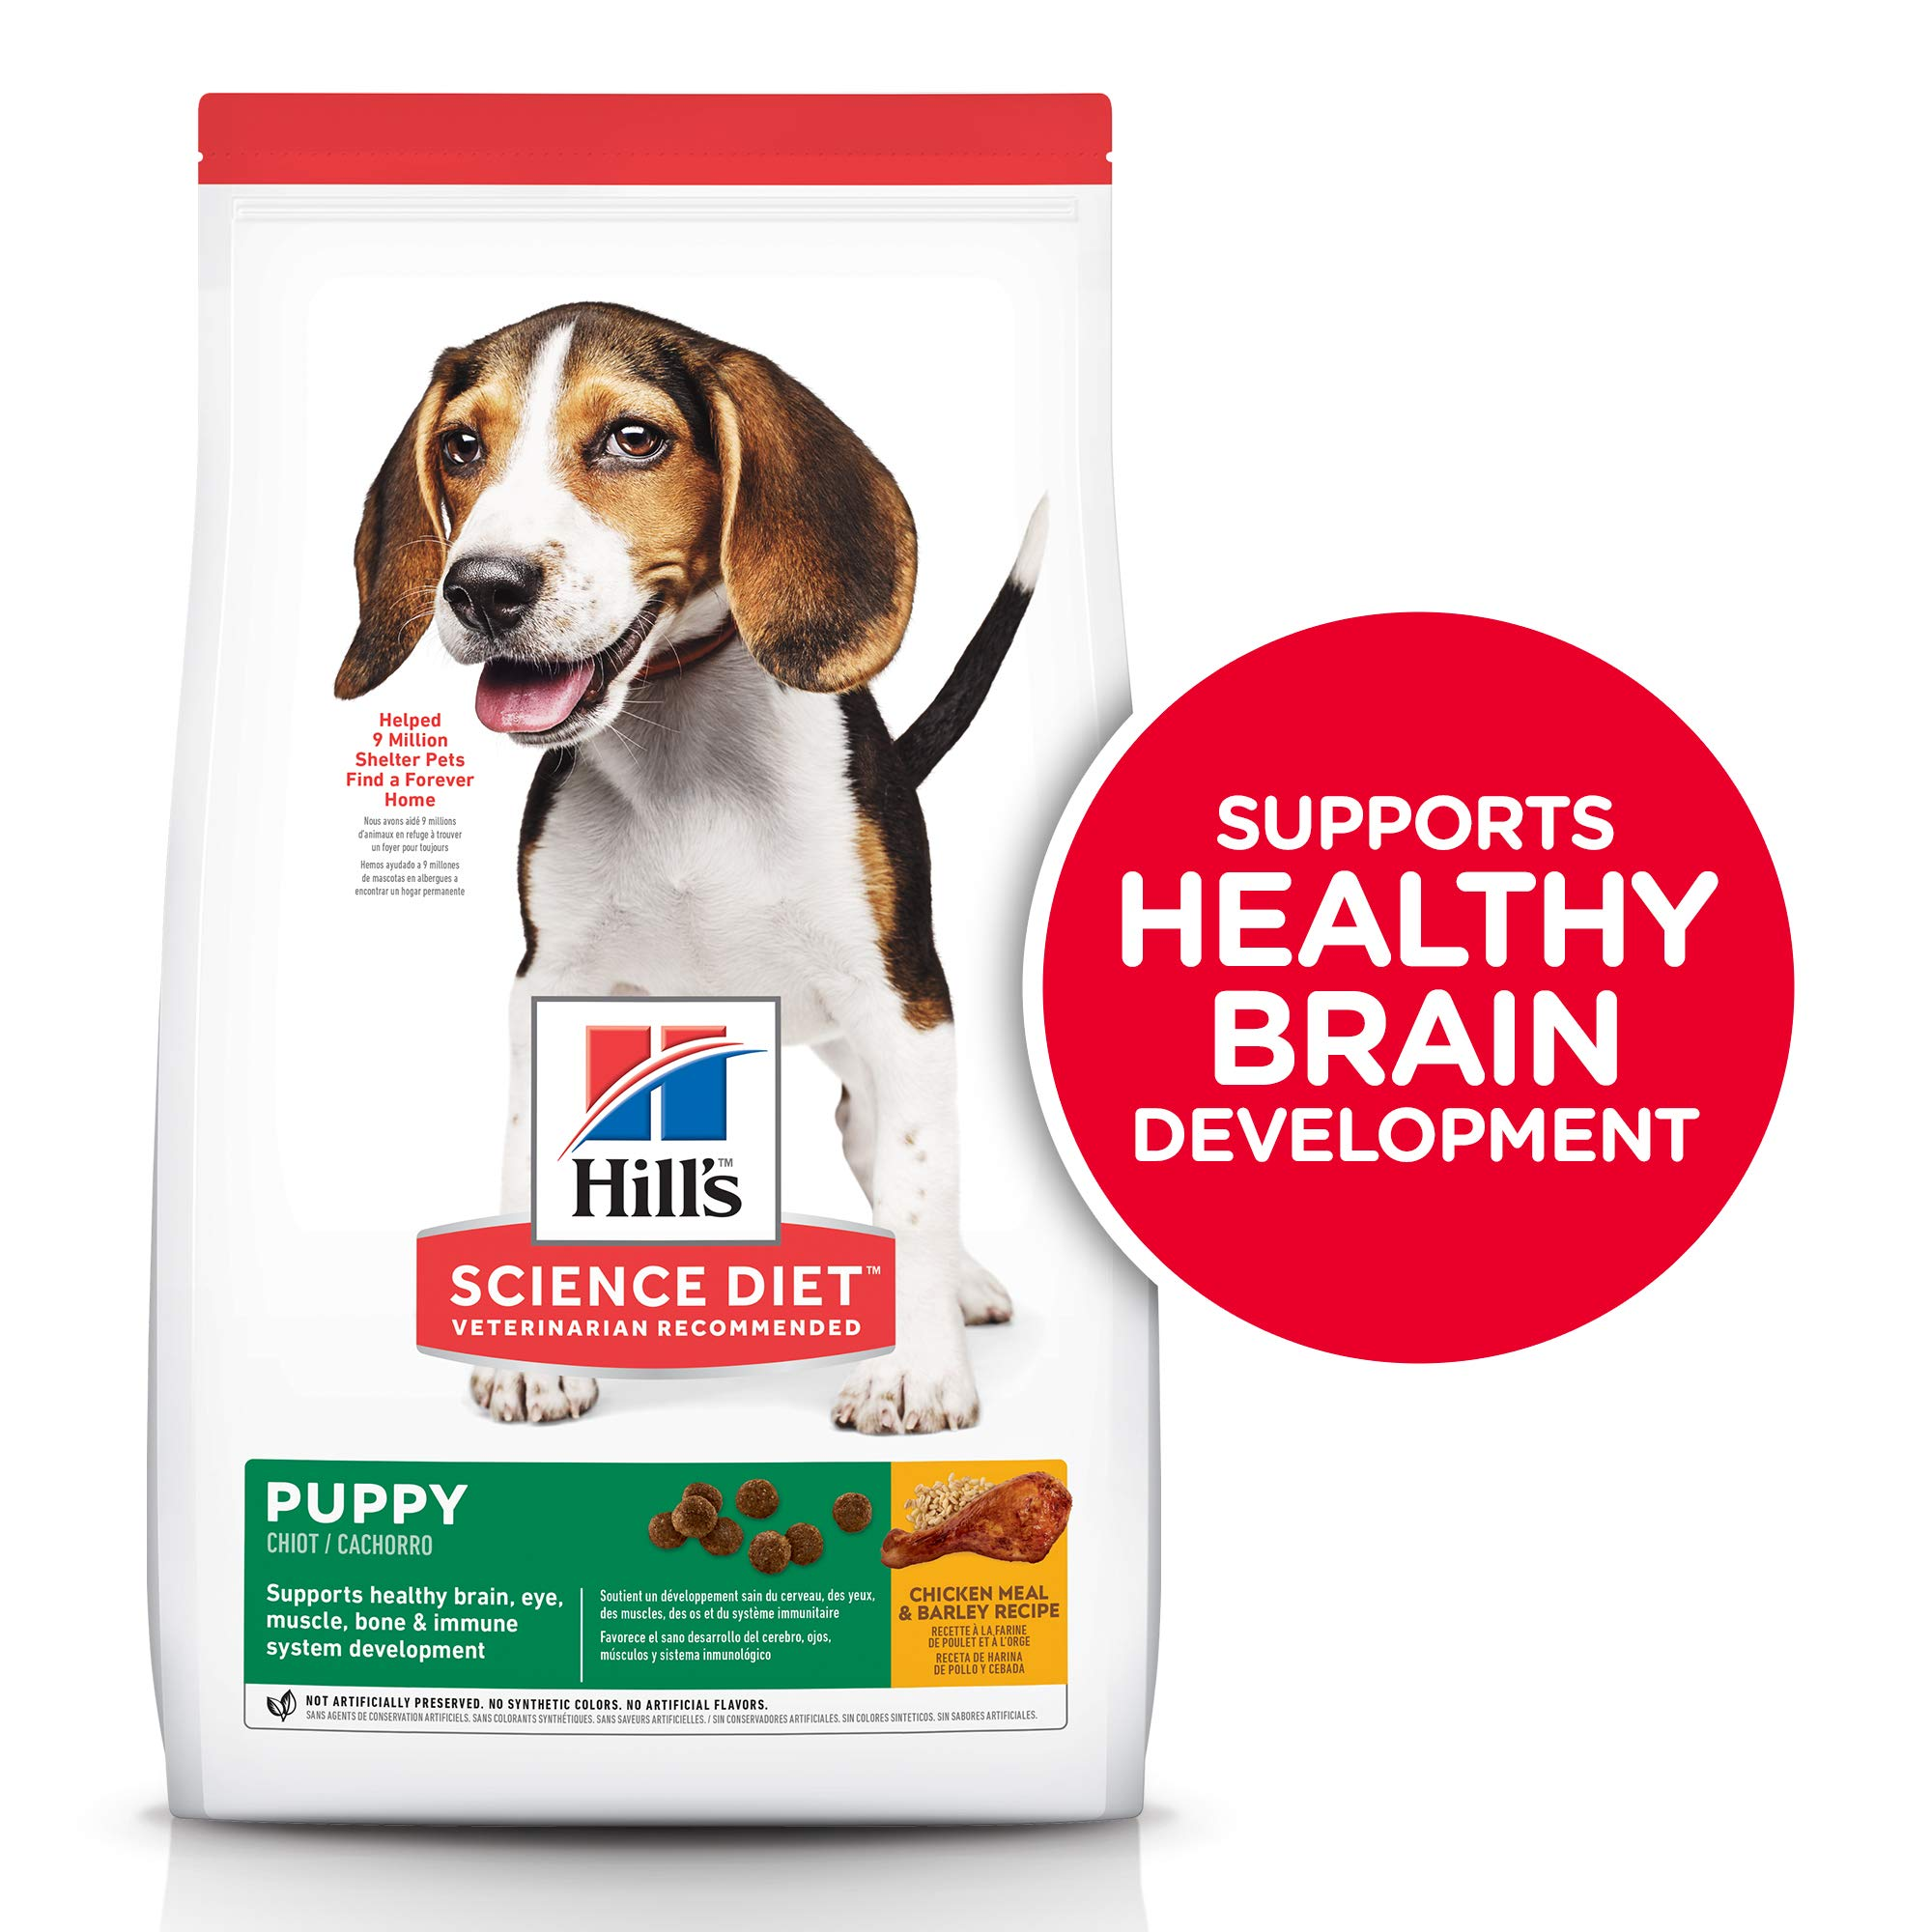 Hill's Science Diet Dry Dog Food, Puppy, Chicken Meal & Barley Recipe, 30 lb Bag by Hill's Science Diet